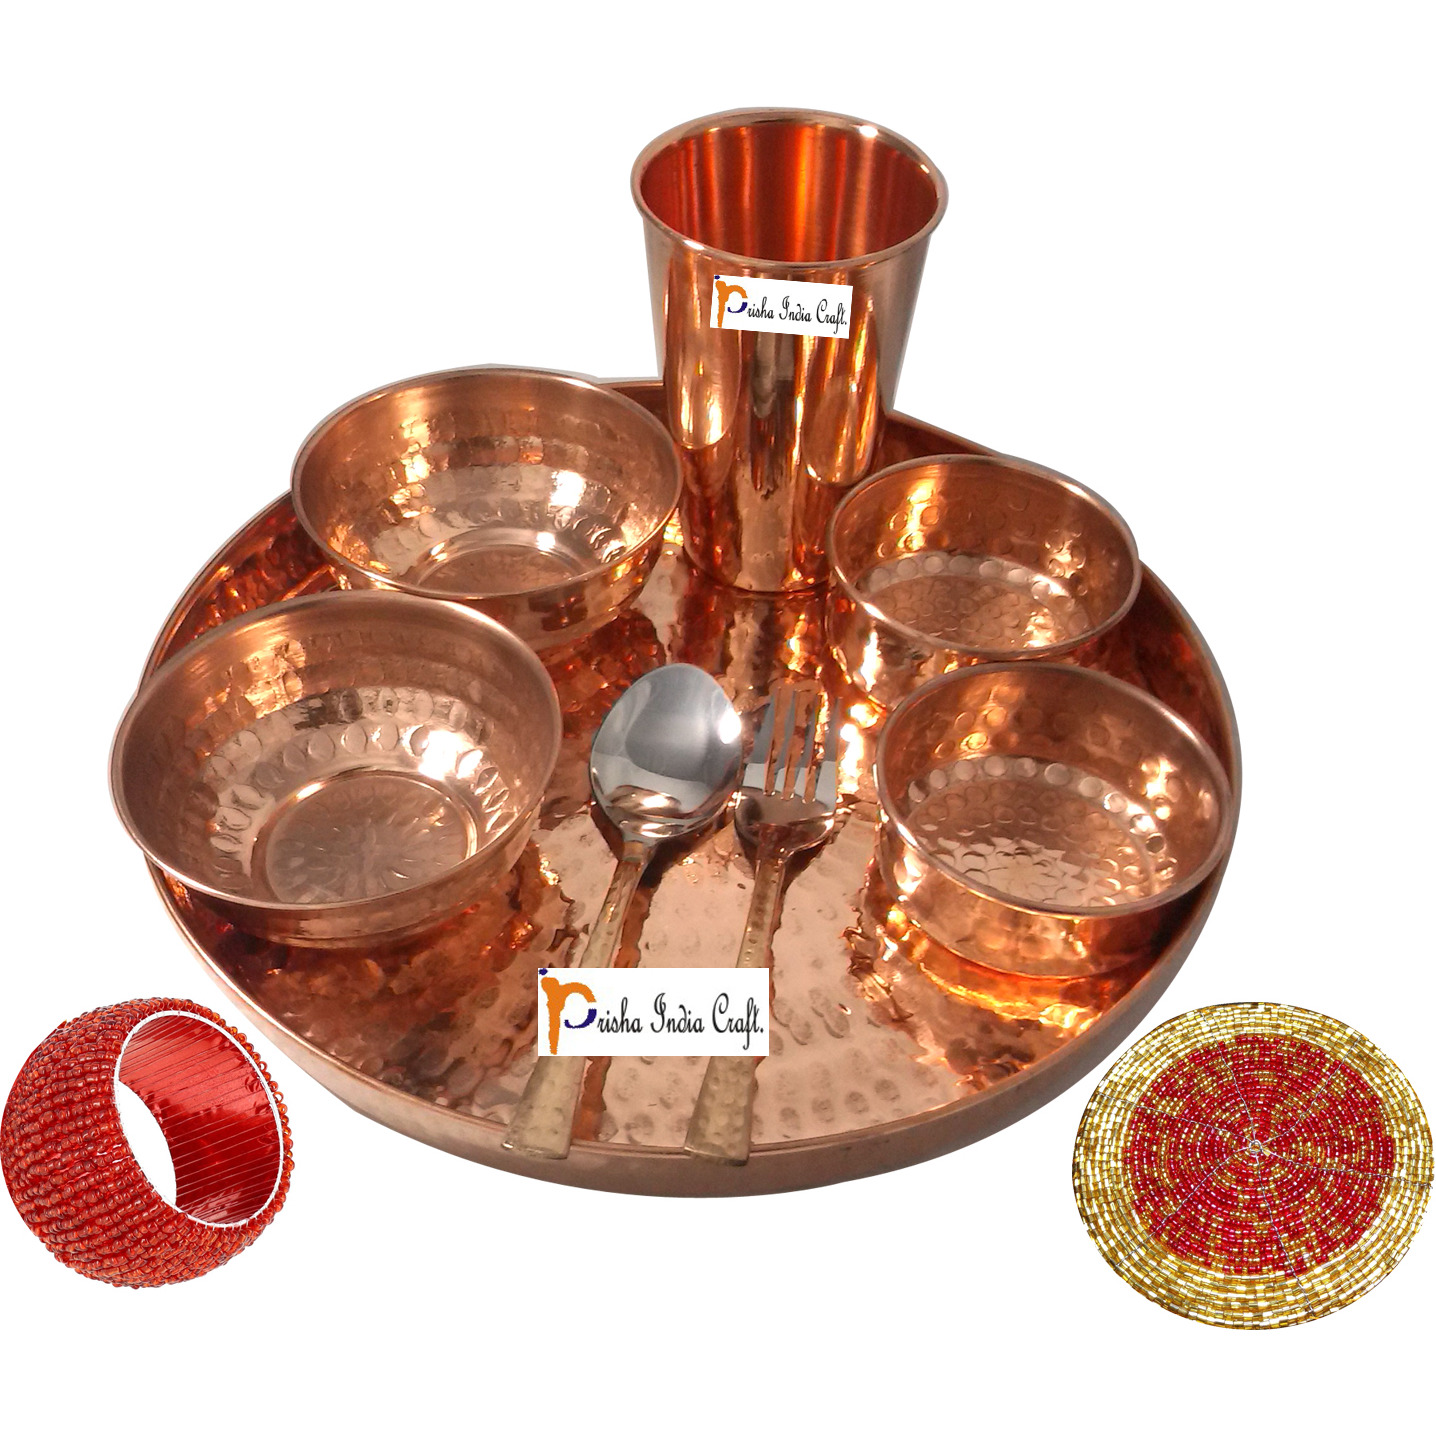 Set of 4 Prisha India Craft B. Indian Dinnerware Pure Copper Dinner Set Dia 12  Traditional Thali Set Dinner Set of Plate, Bowl, Spoons, Glass with Napkin ring and Coaster - Christmas Gift